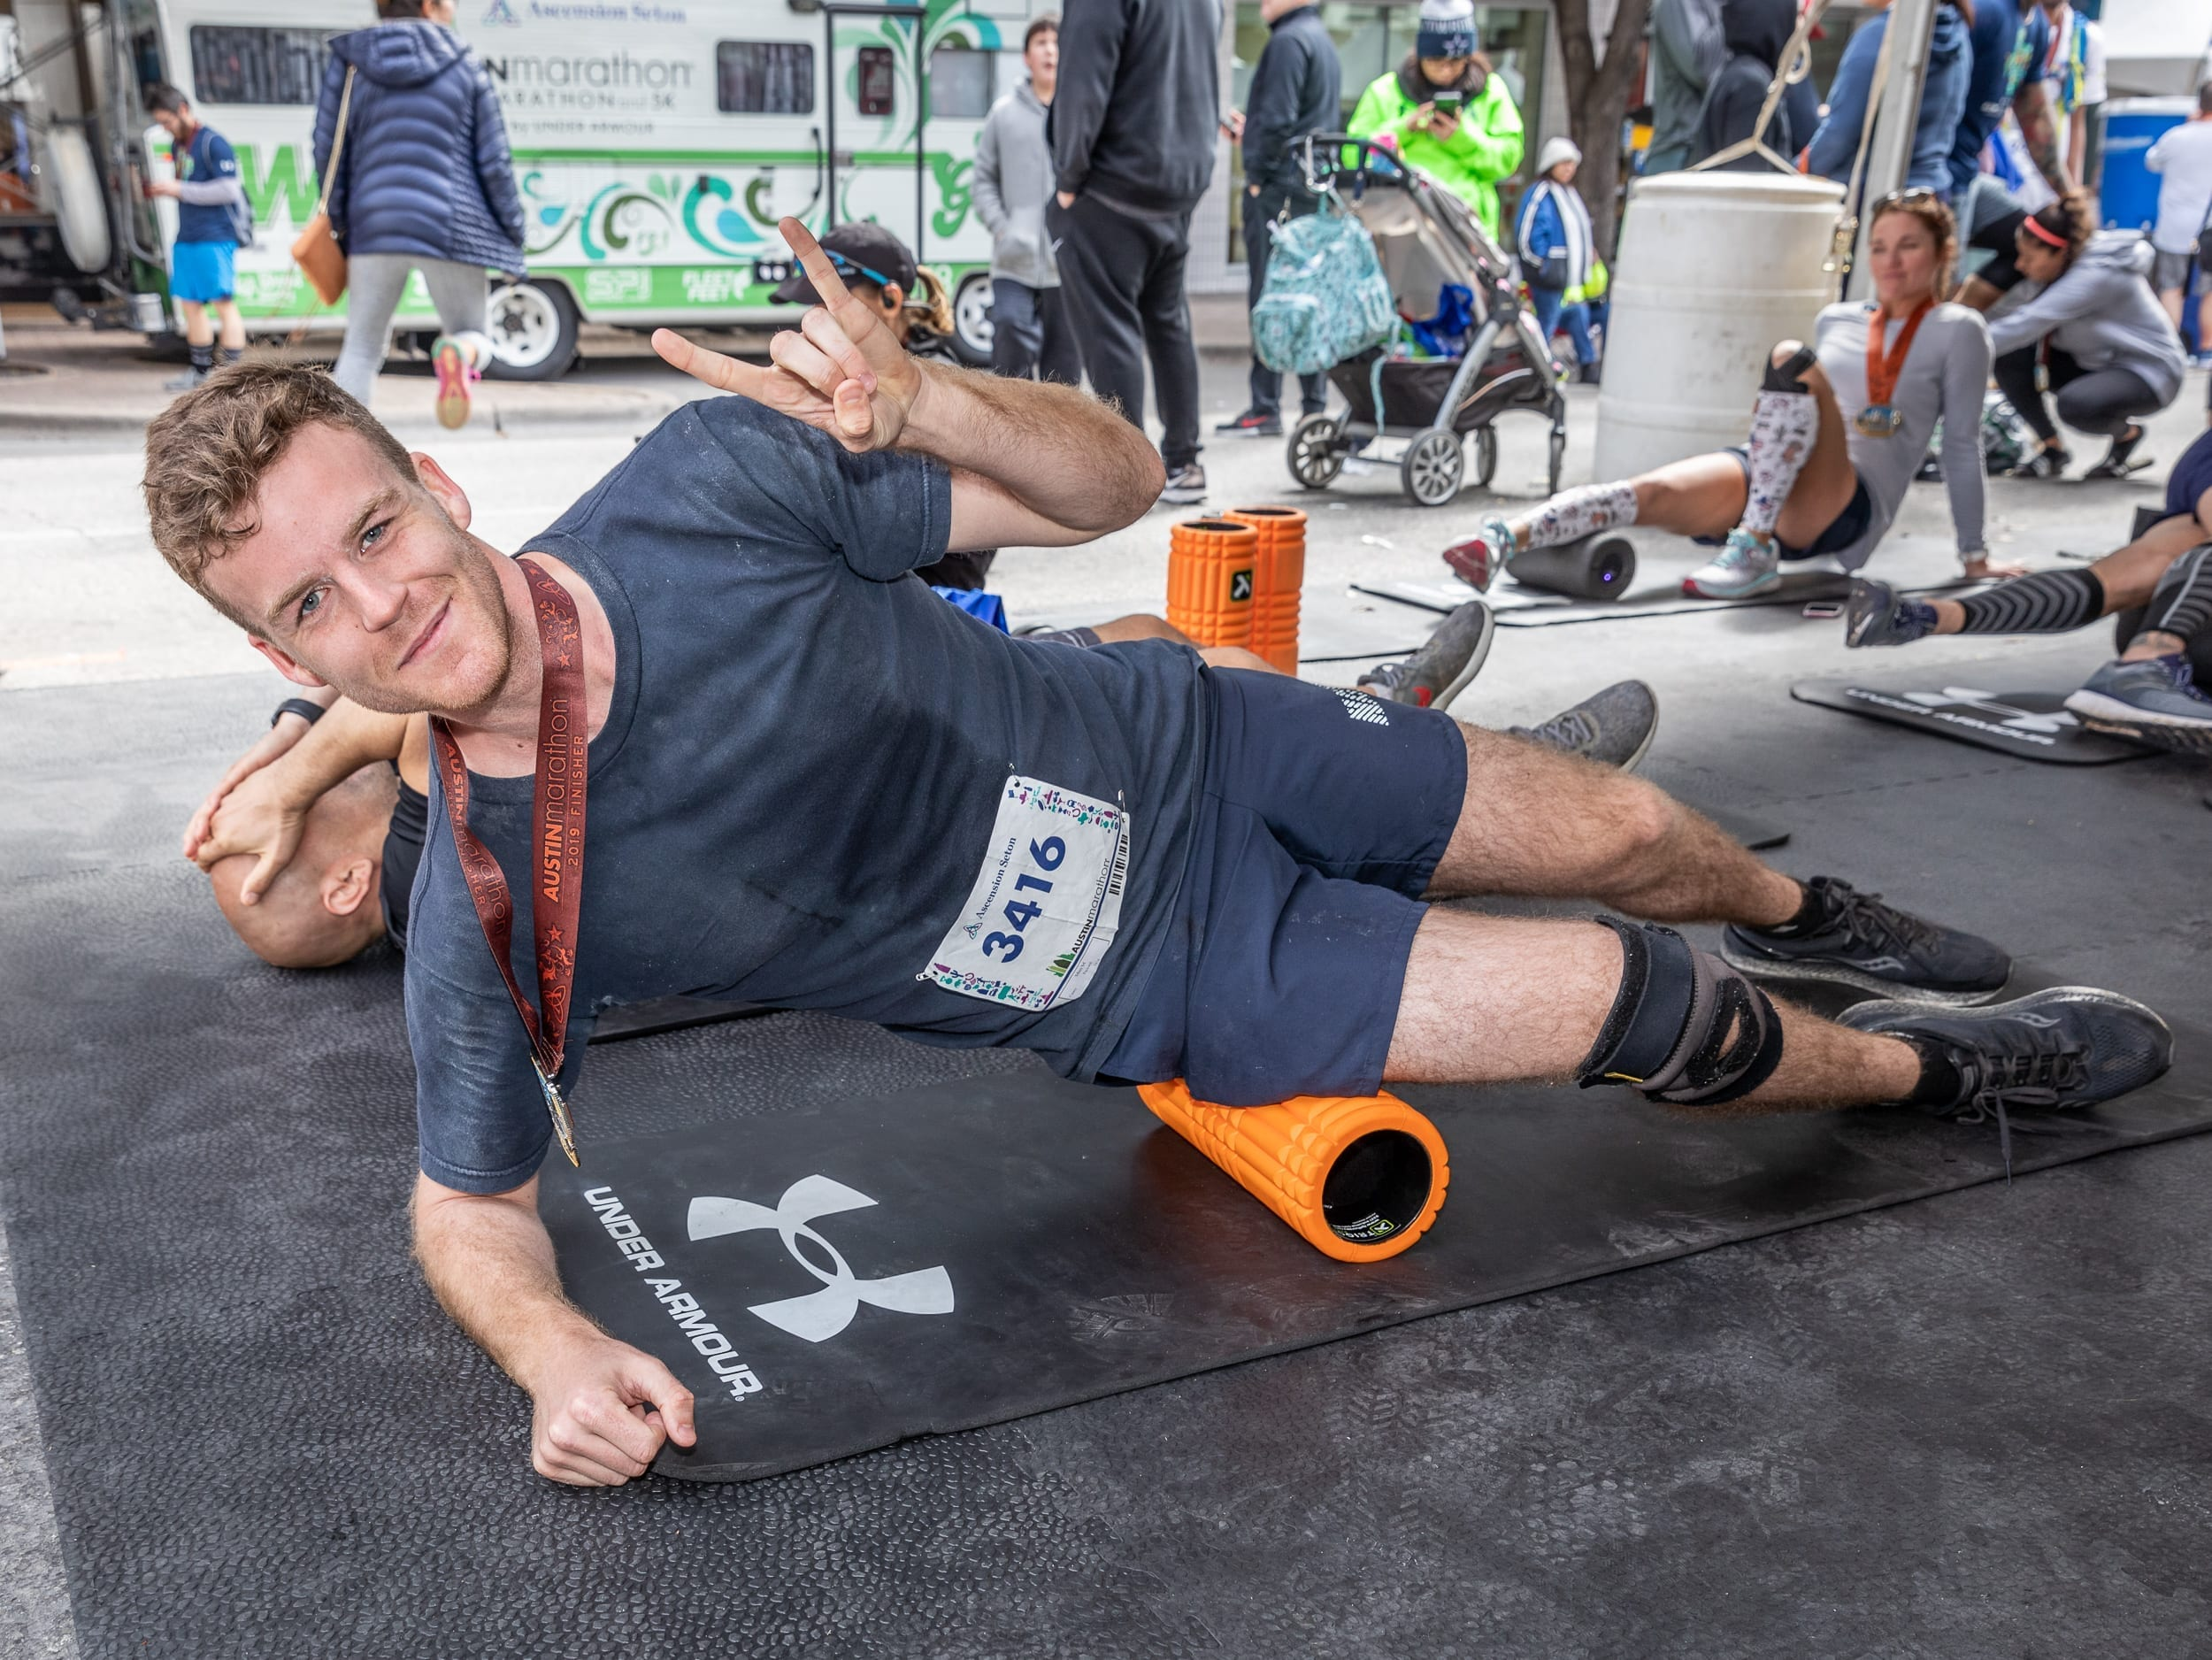 Runner foam rolls after 2019 Austin Marathon, a great tip to see improvement during training!